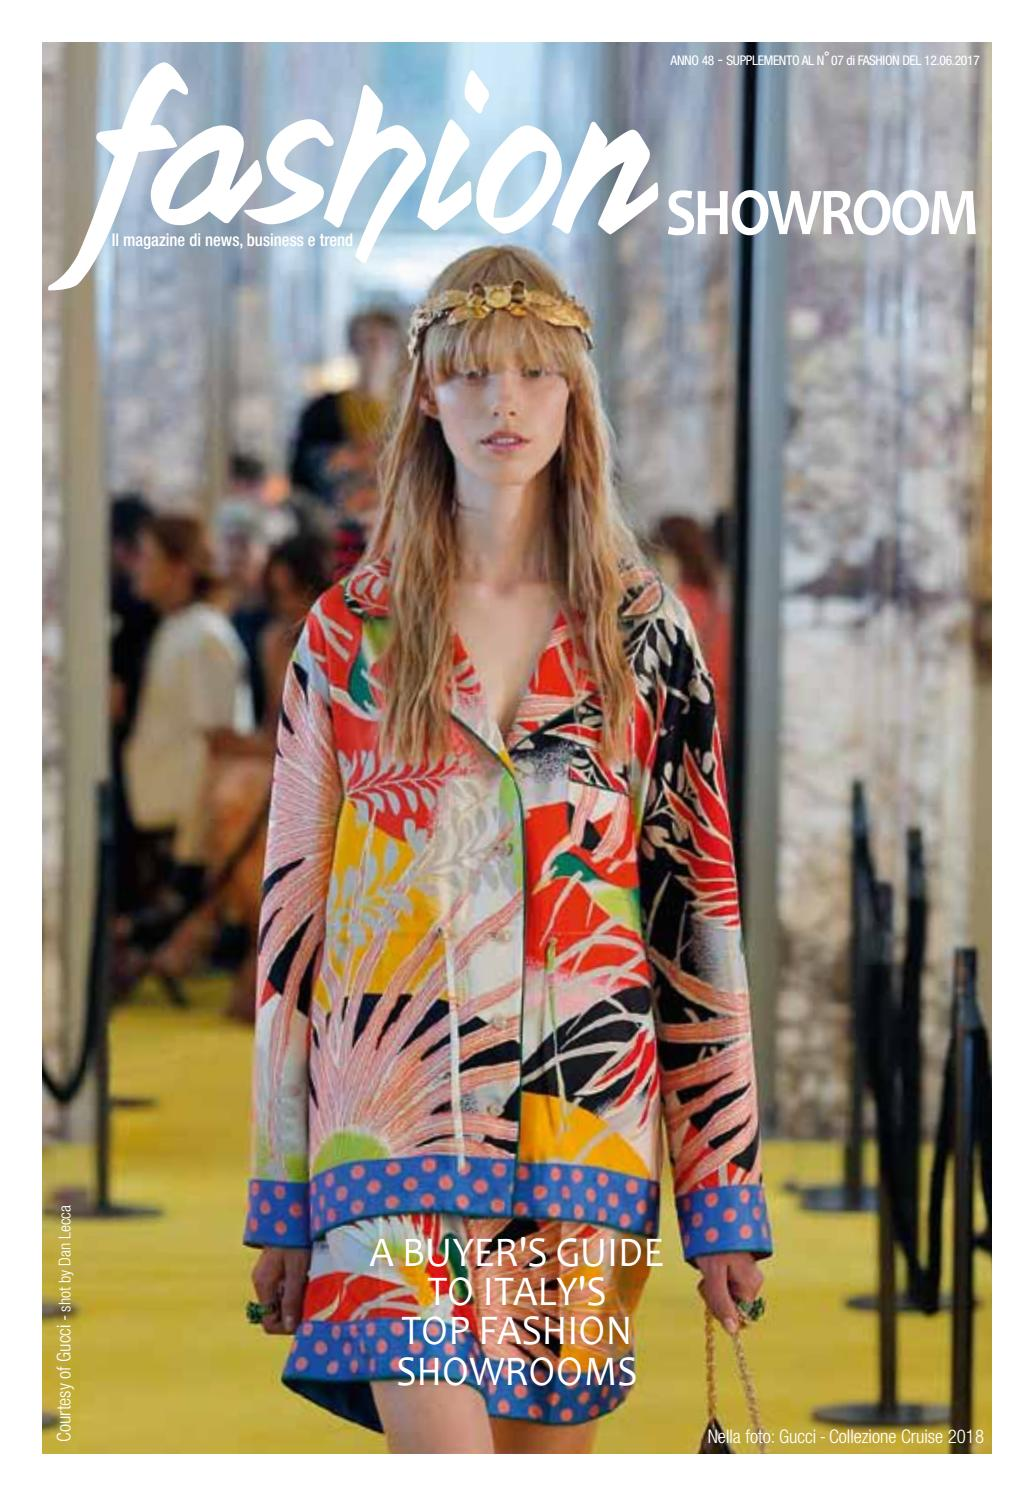 Flip page showroom giu 2017 by Fashionmagazine - issuu e6914847373